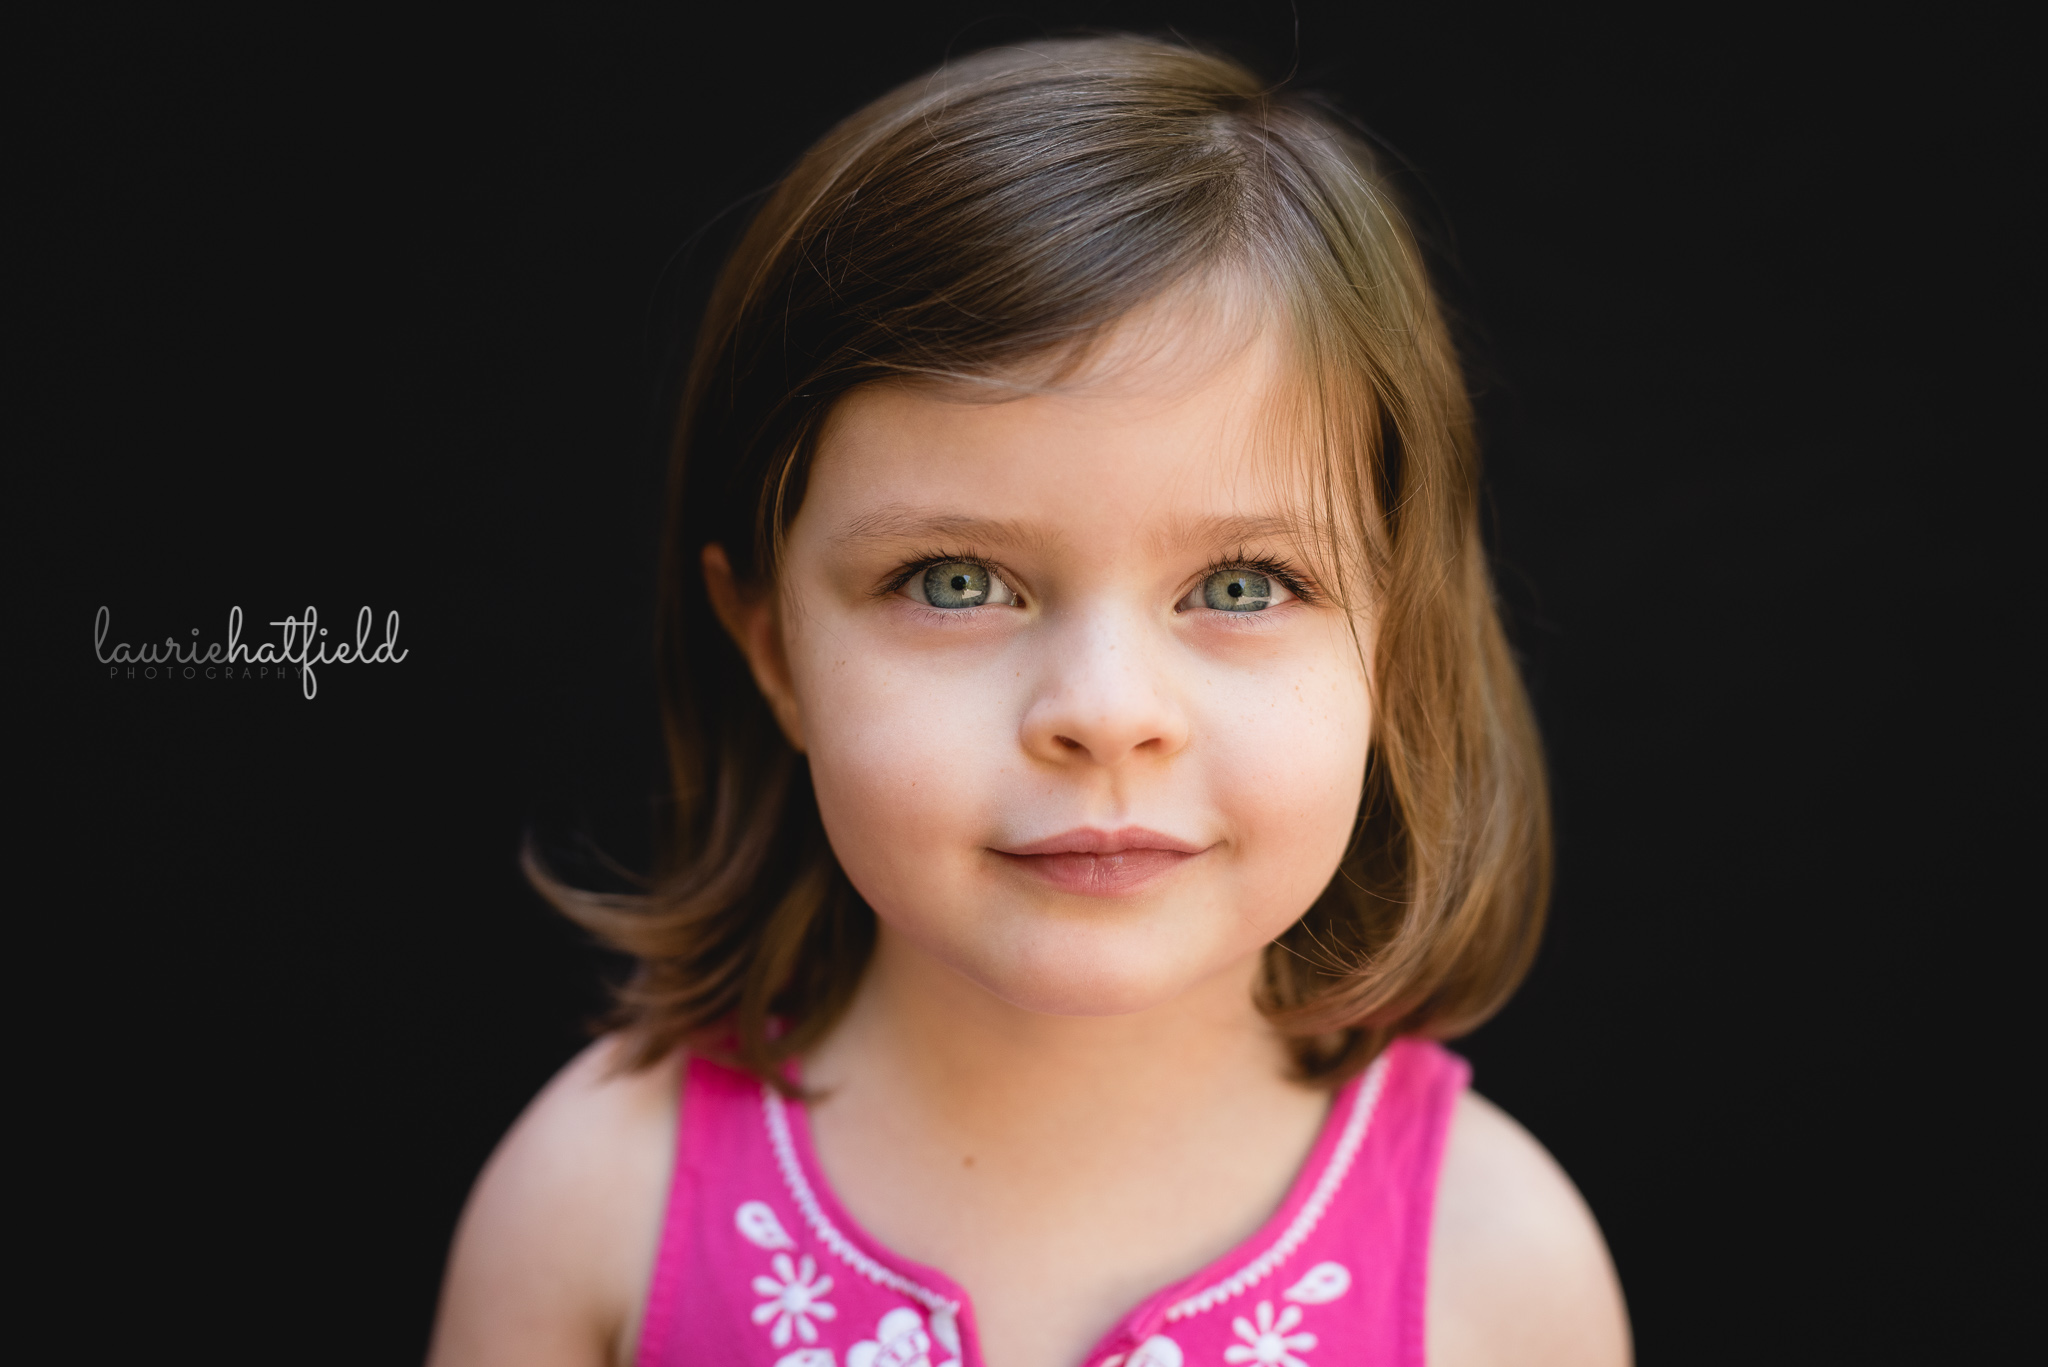 3-year-old girl with pink dress | Mobile AL school photos